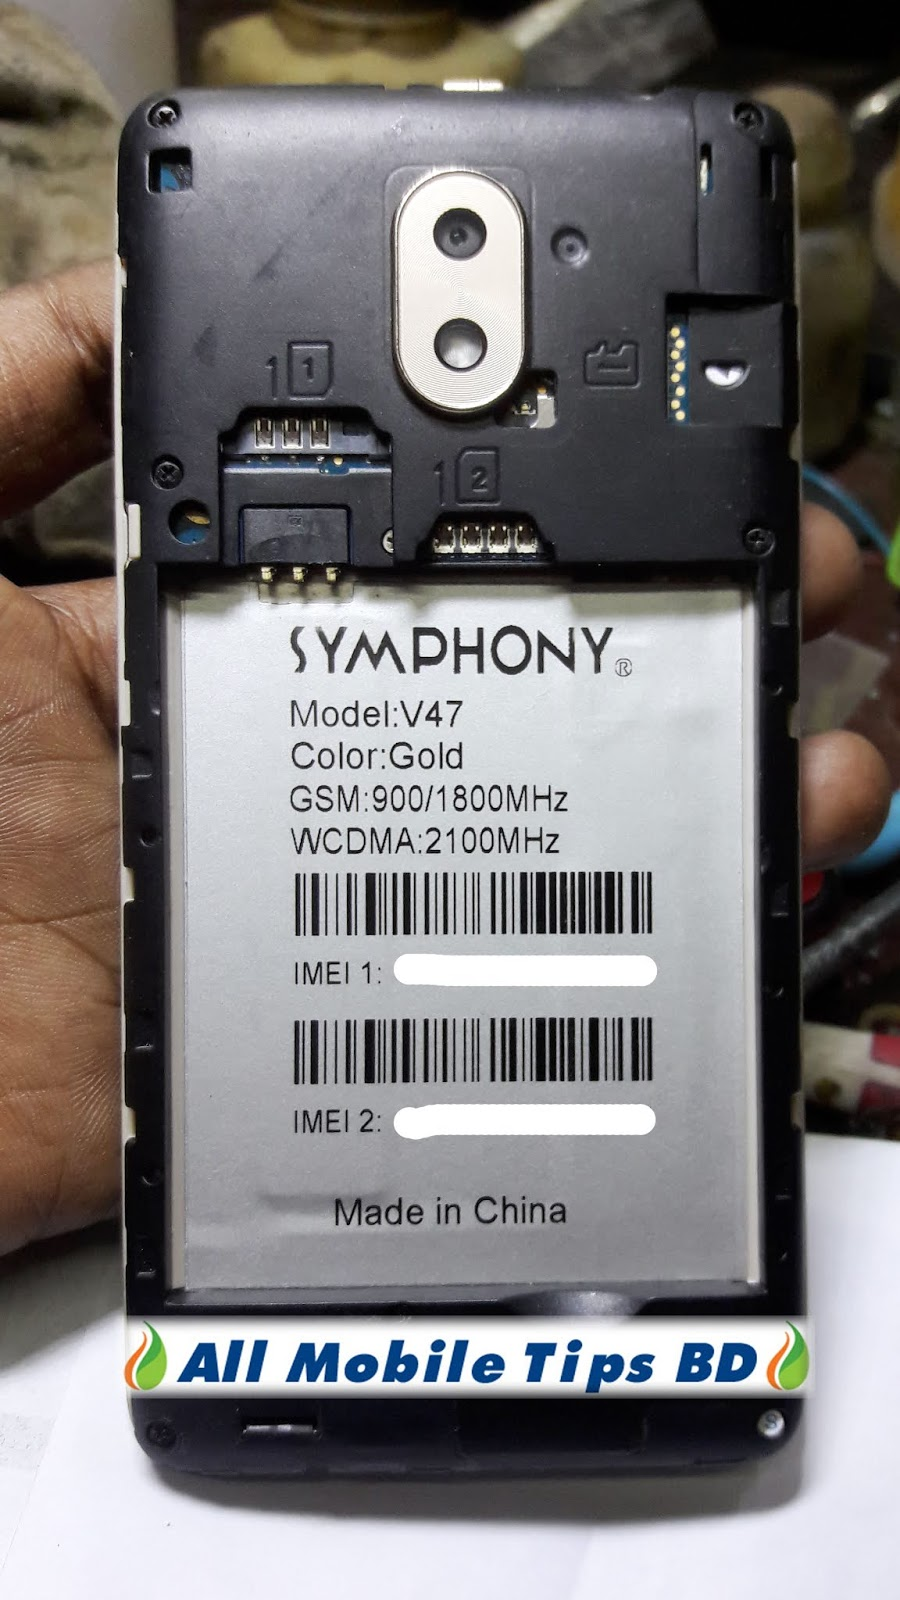 Symphony V47 MT6580 Firmware Test File Without Password - All Mobile